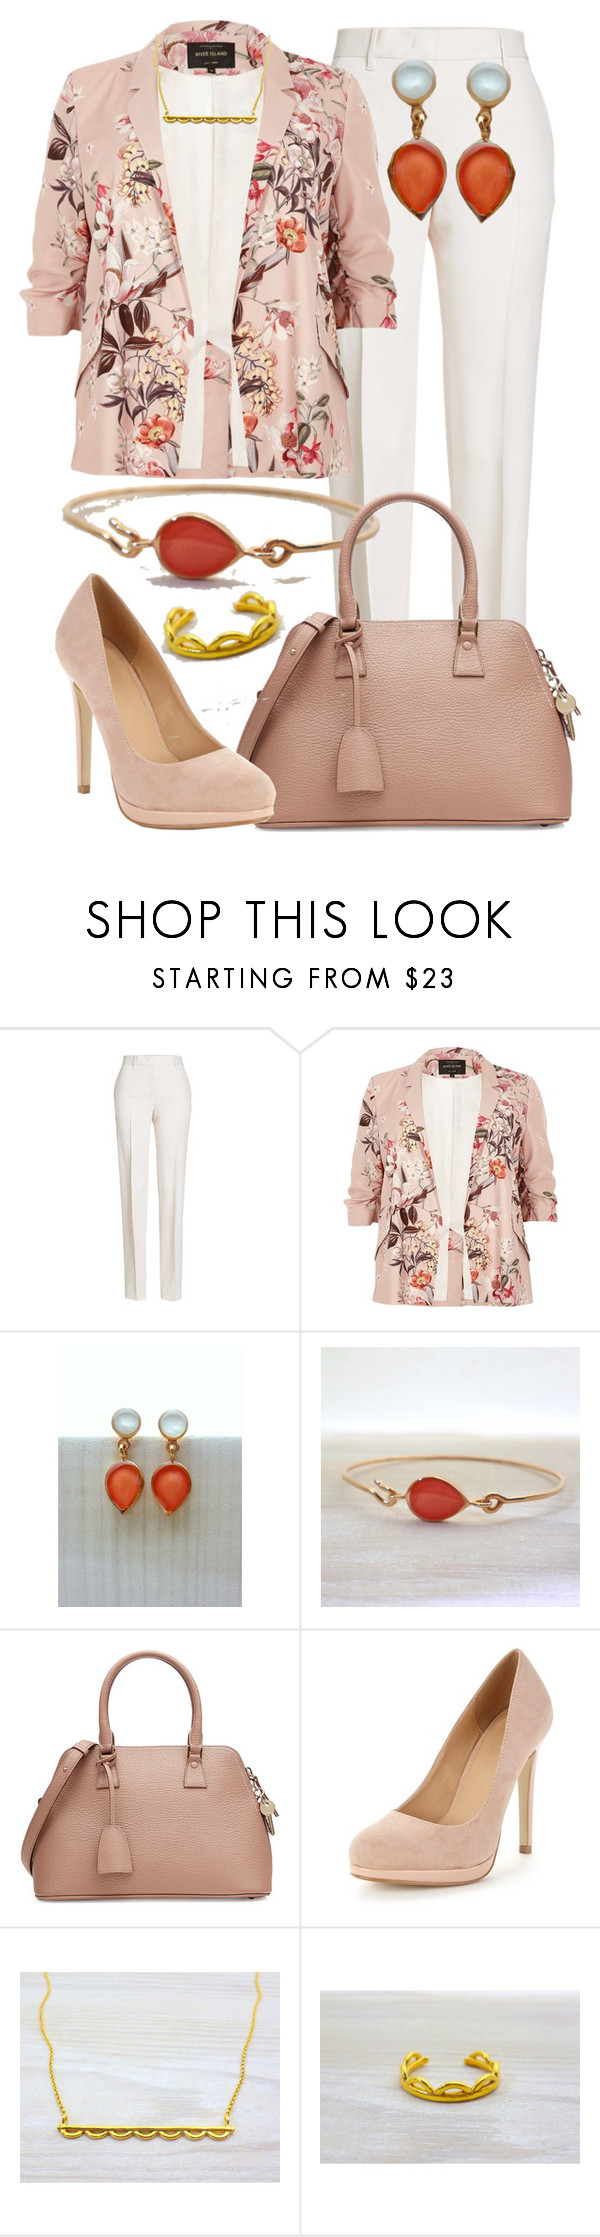 """Floral Jacket - Evangelos Jewellery"" by evanangel ❤ liked on Polyvore featuring Jil Sander, River Island and Maison Margiela"